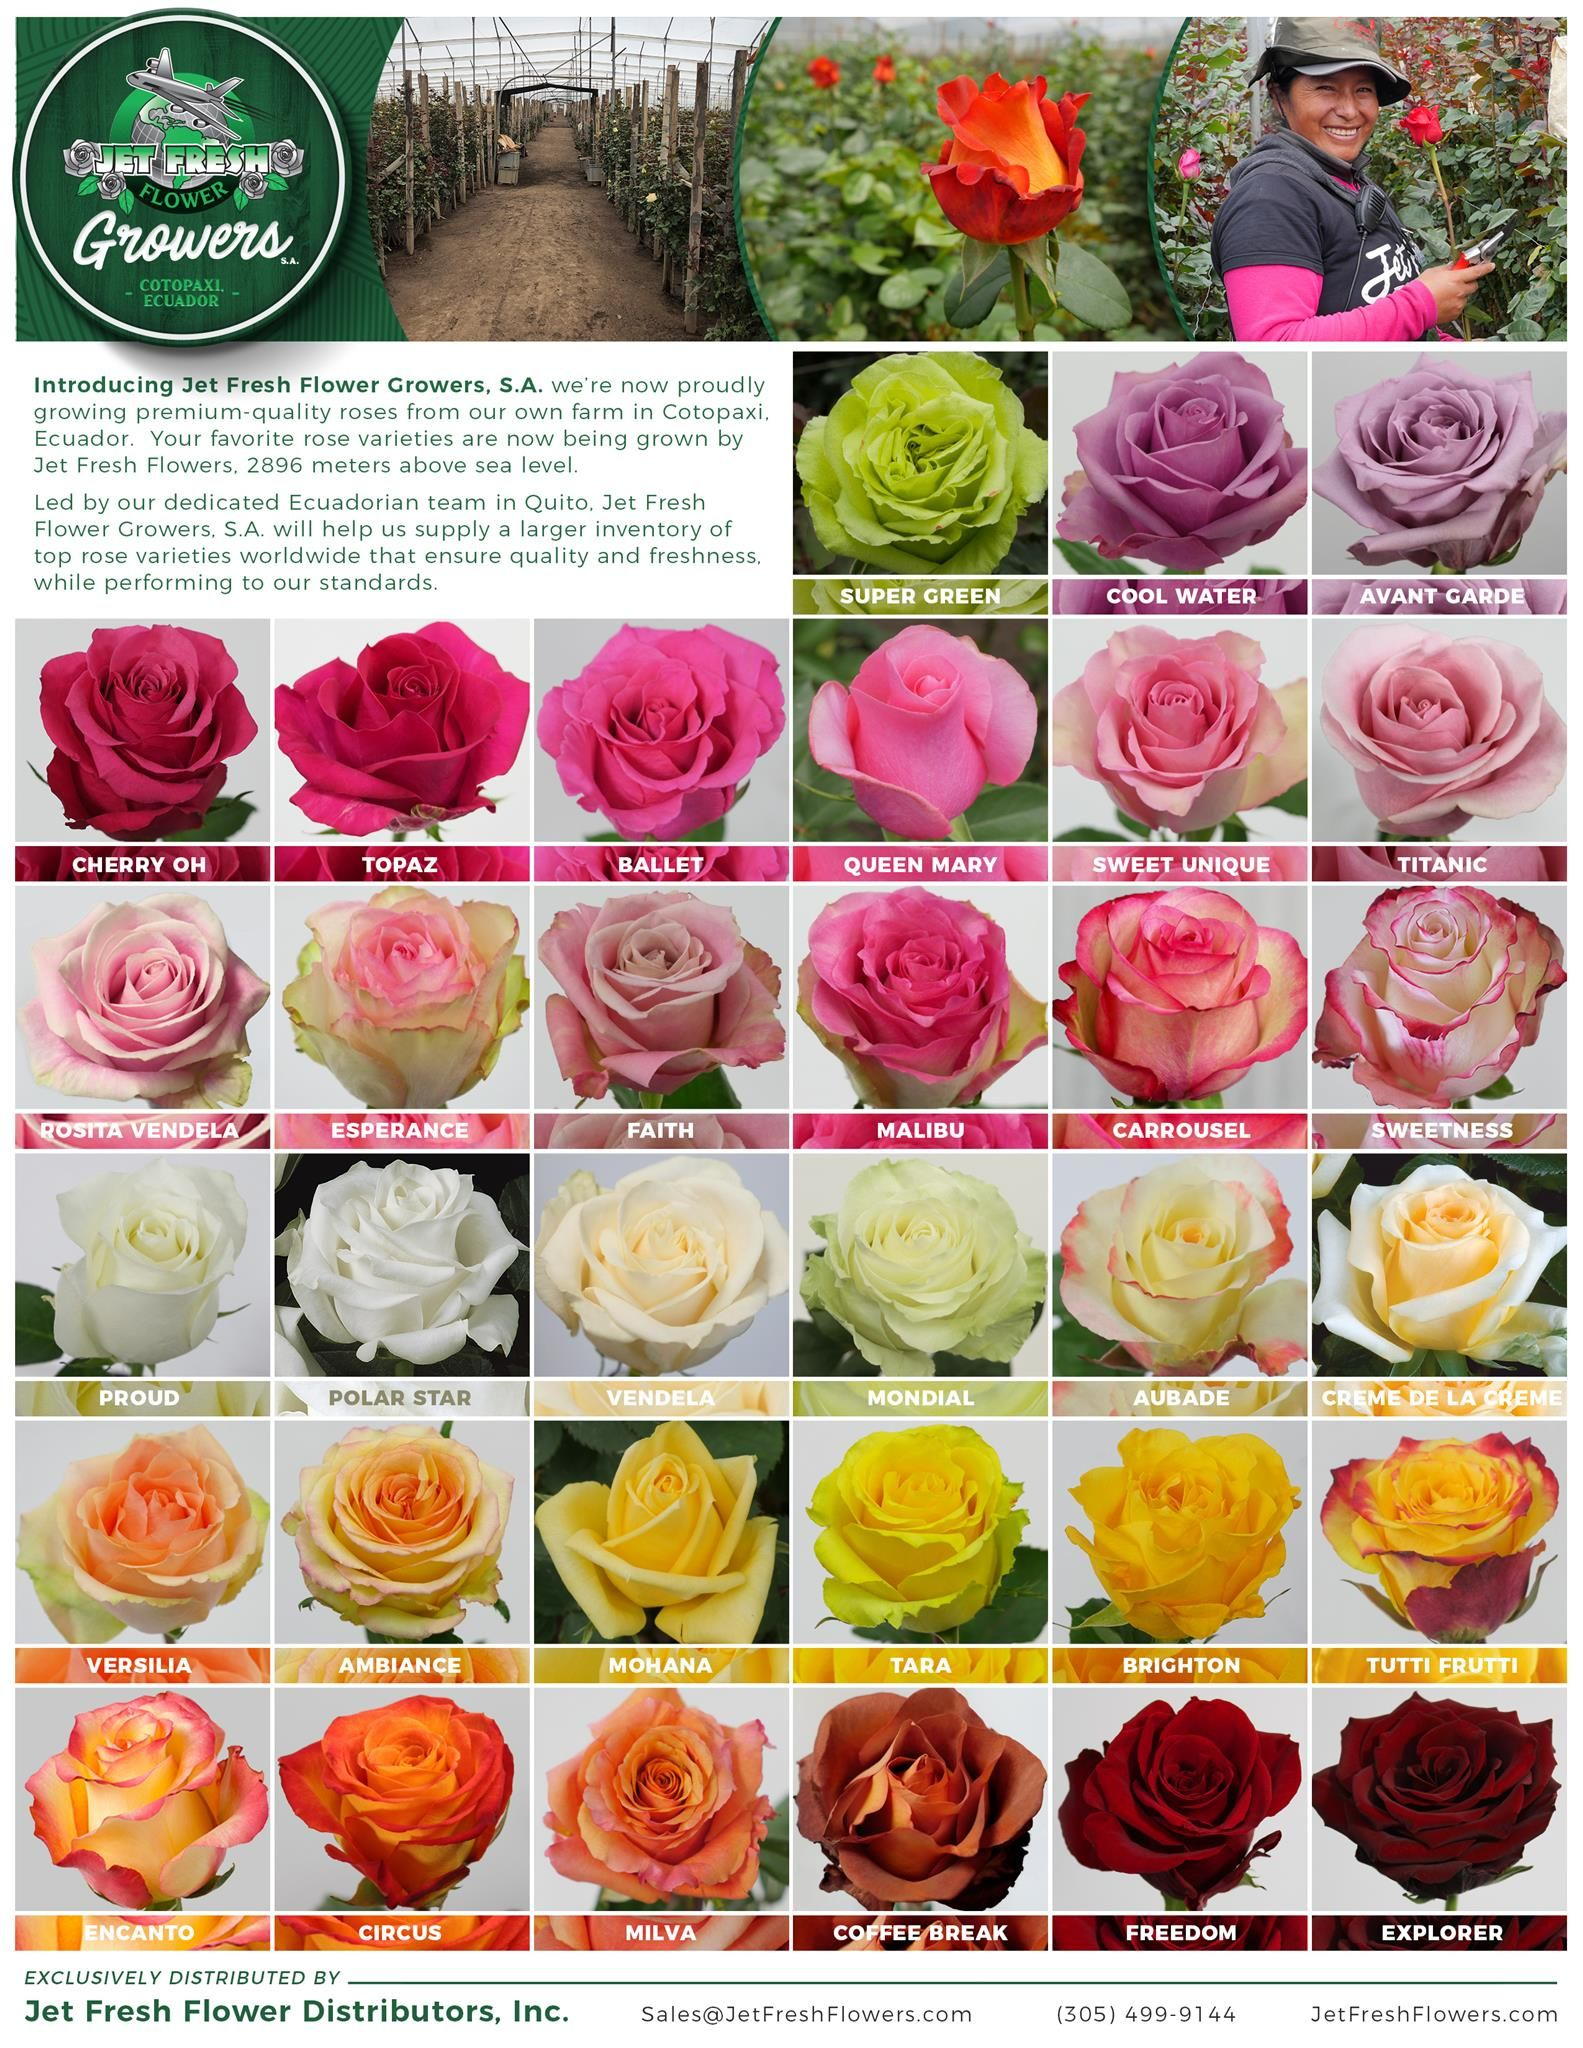 Jetfreshflowers Com Jet Fresh Flower Growers S A Rose Variety Sheet Rose Varieties Beautiful Rose Flowers Different Types Of Flowers